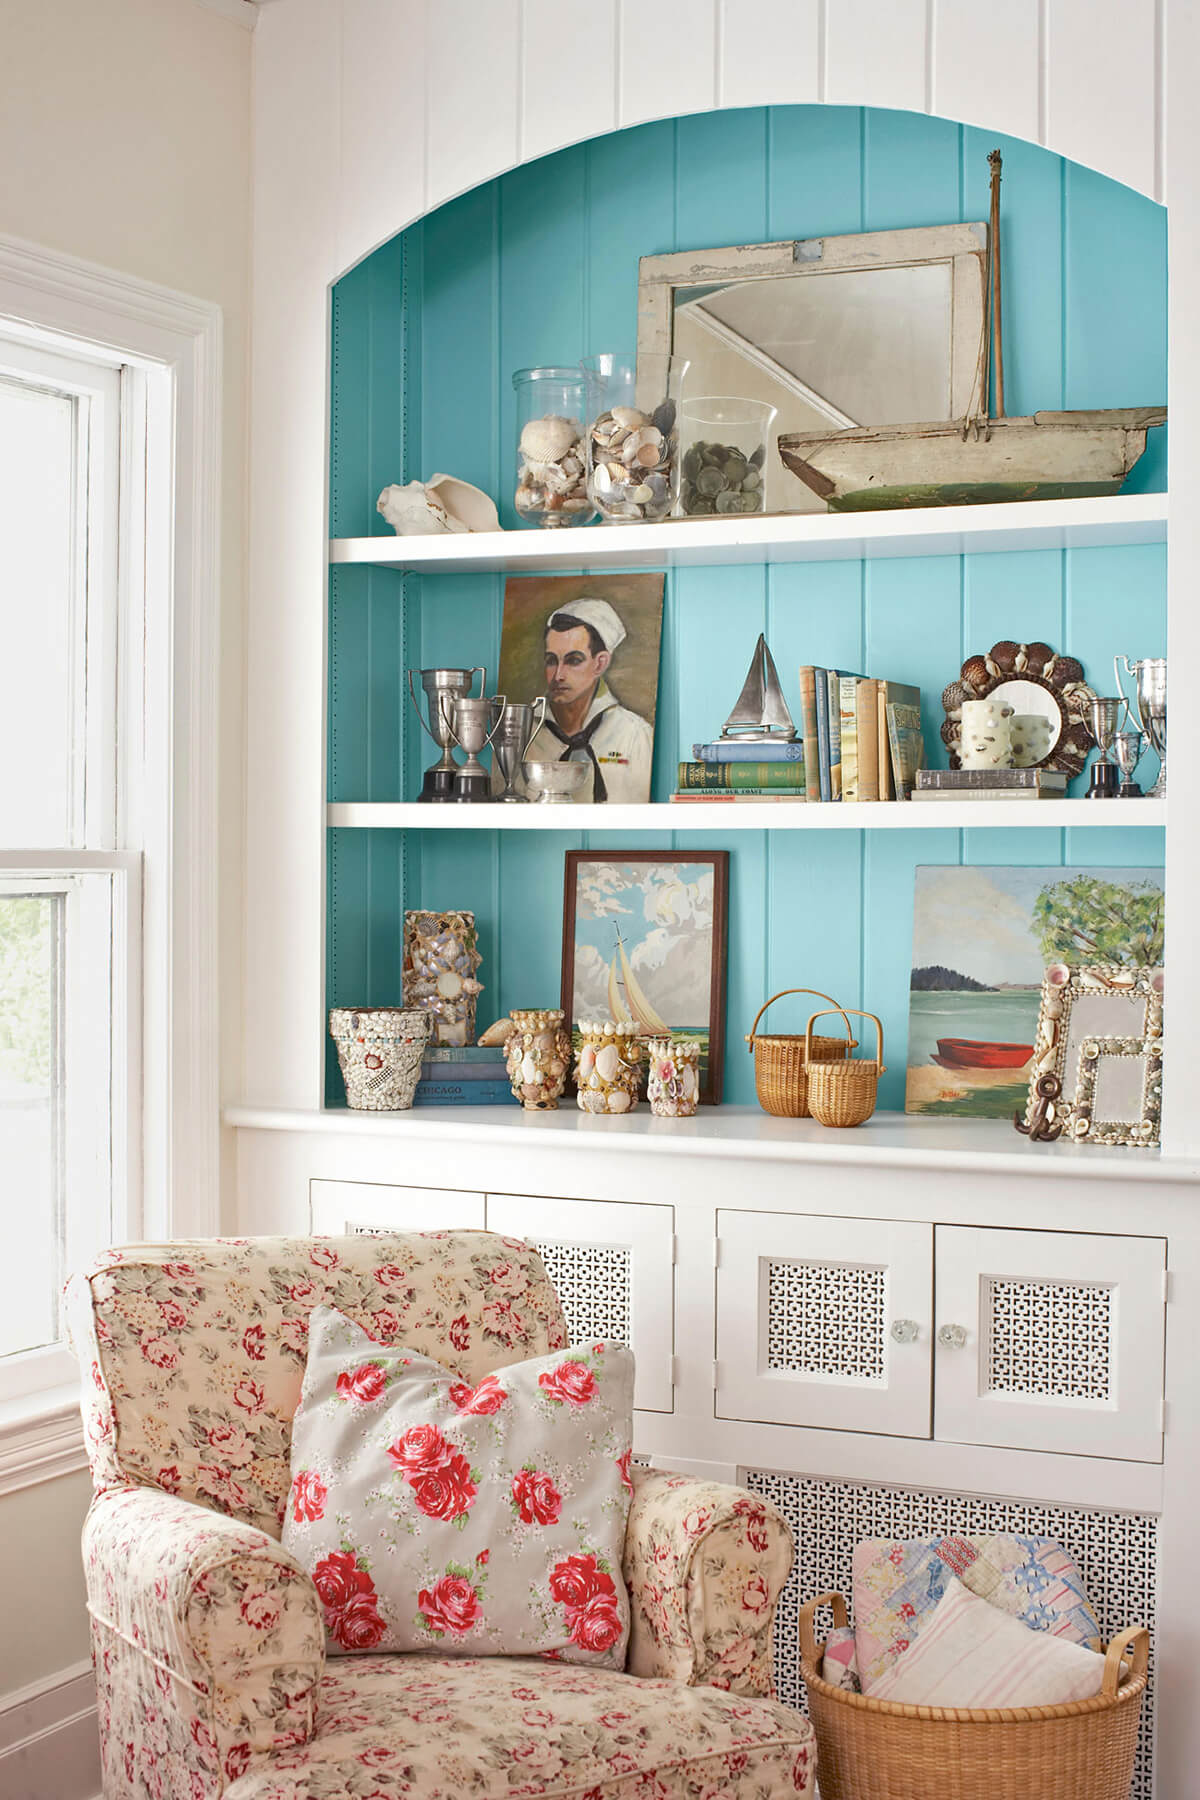 Shelf Storage for Favorites from the Sea